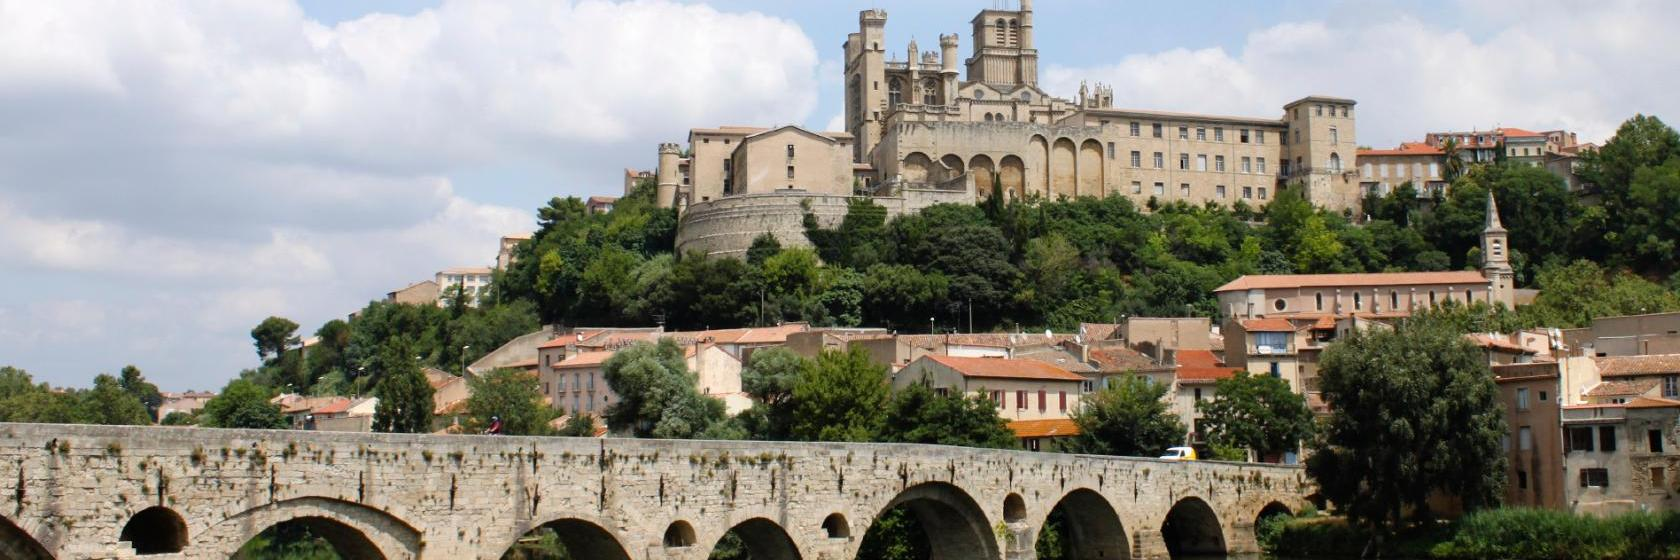 In And Out Beziers 10 best béziers hotels, france (from $39)